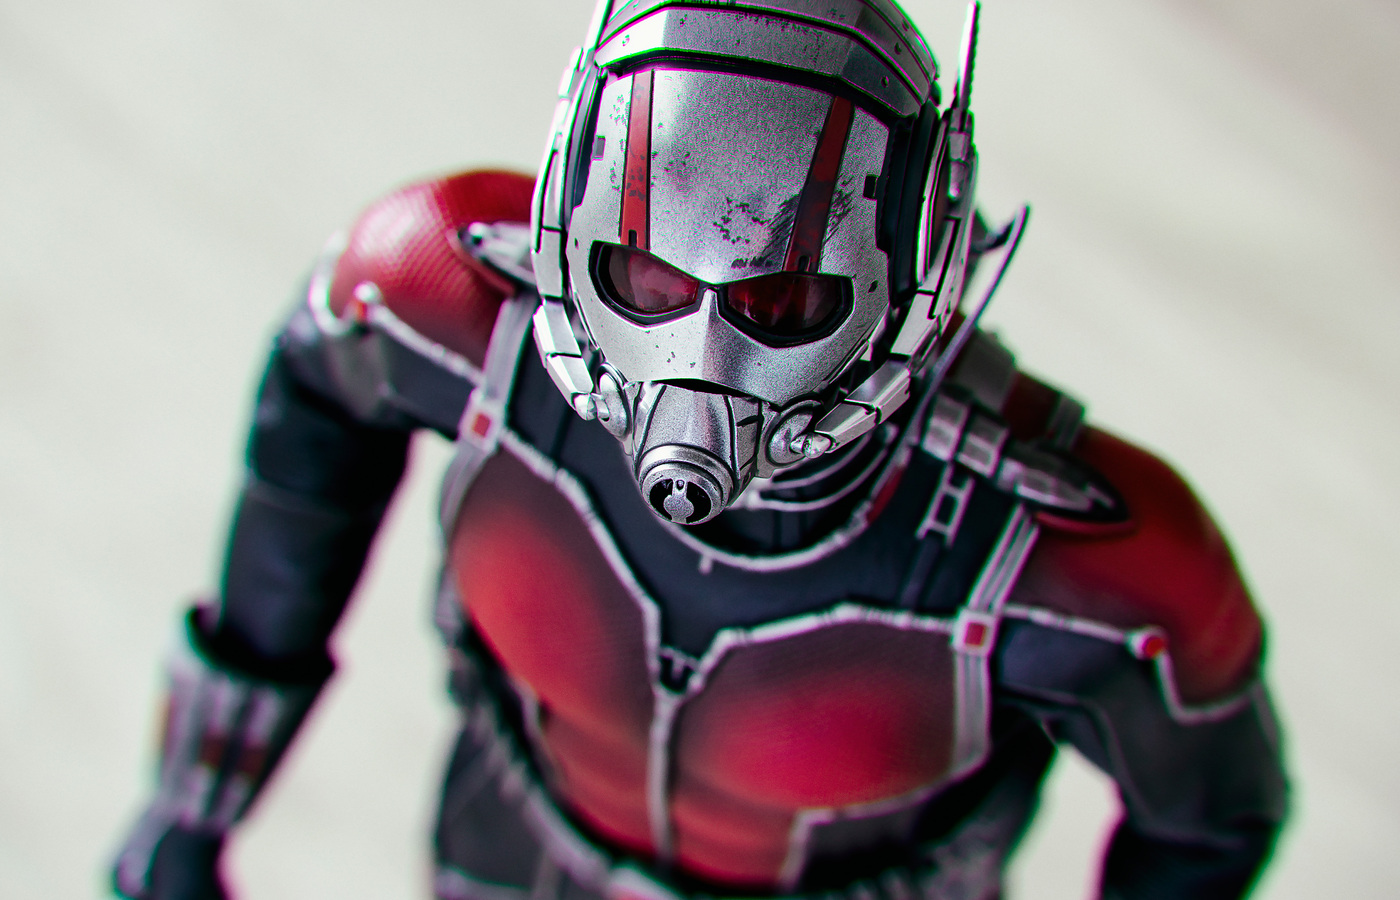 ant-man-a-soldier-size-of-an-insect-4v.jpg